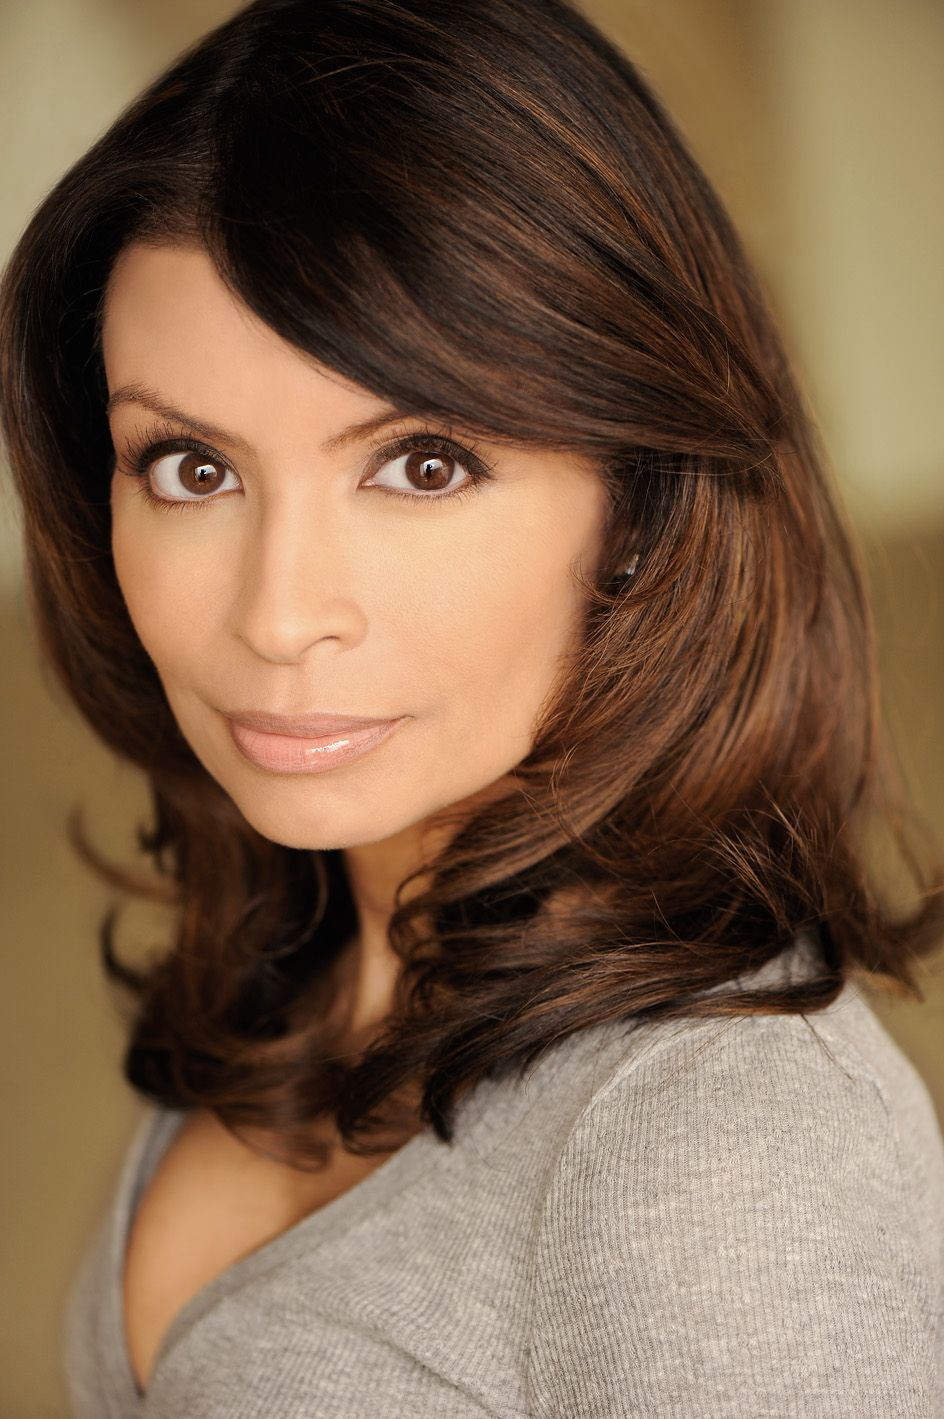 Vanessa Marquez (actress) naked (79 foto and video), Pussy, Cleavage, Twitter, in bikini 2018